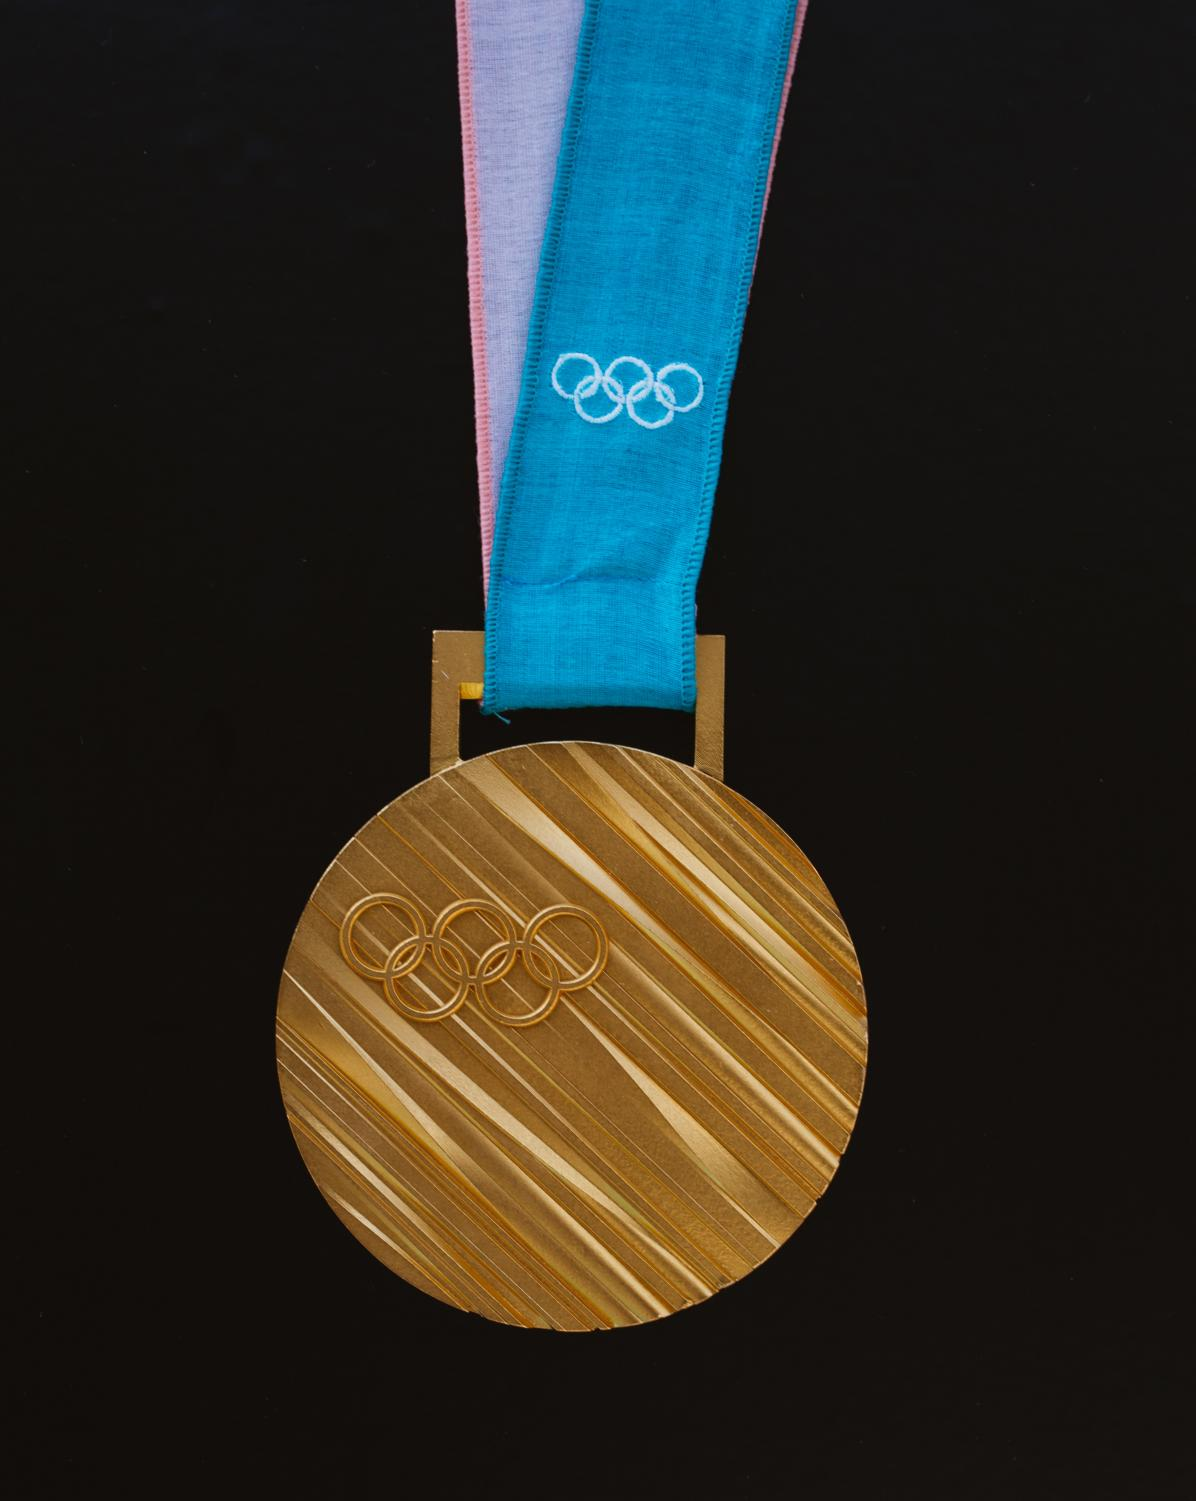 Athletes around the world will be going for the gold this summer!